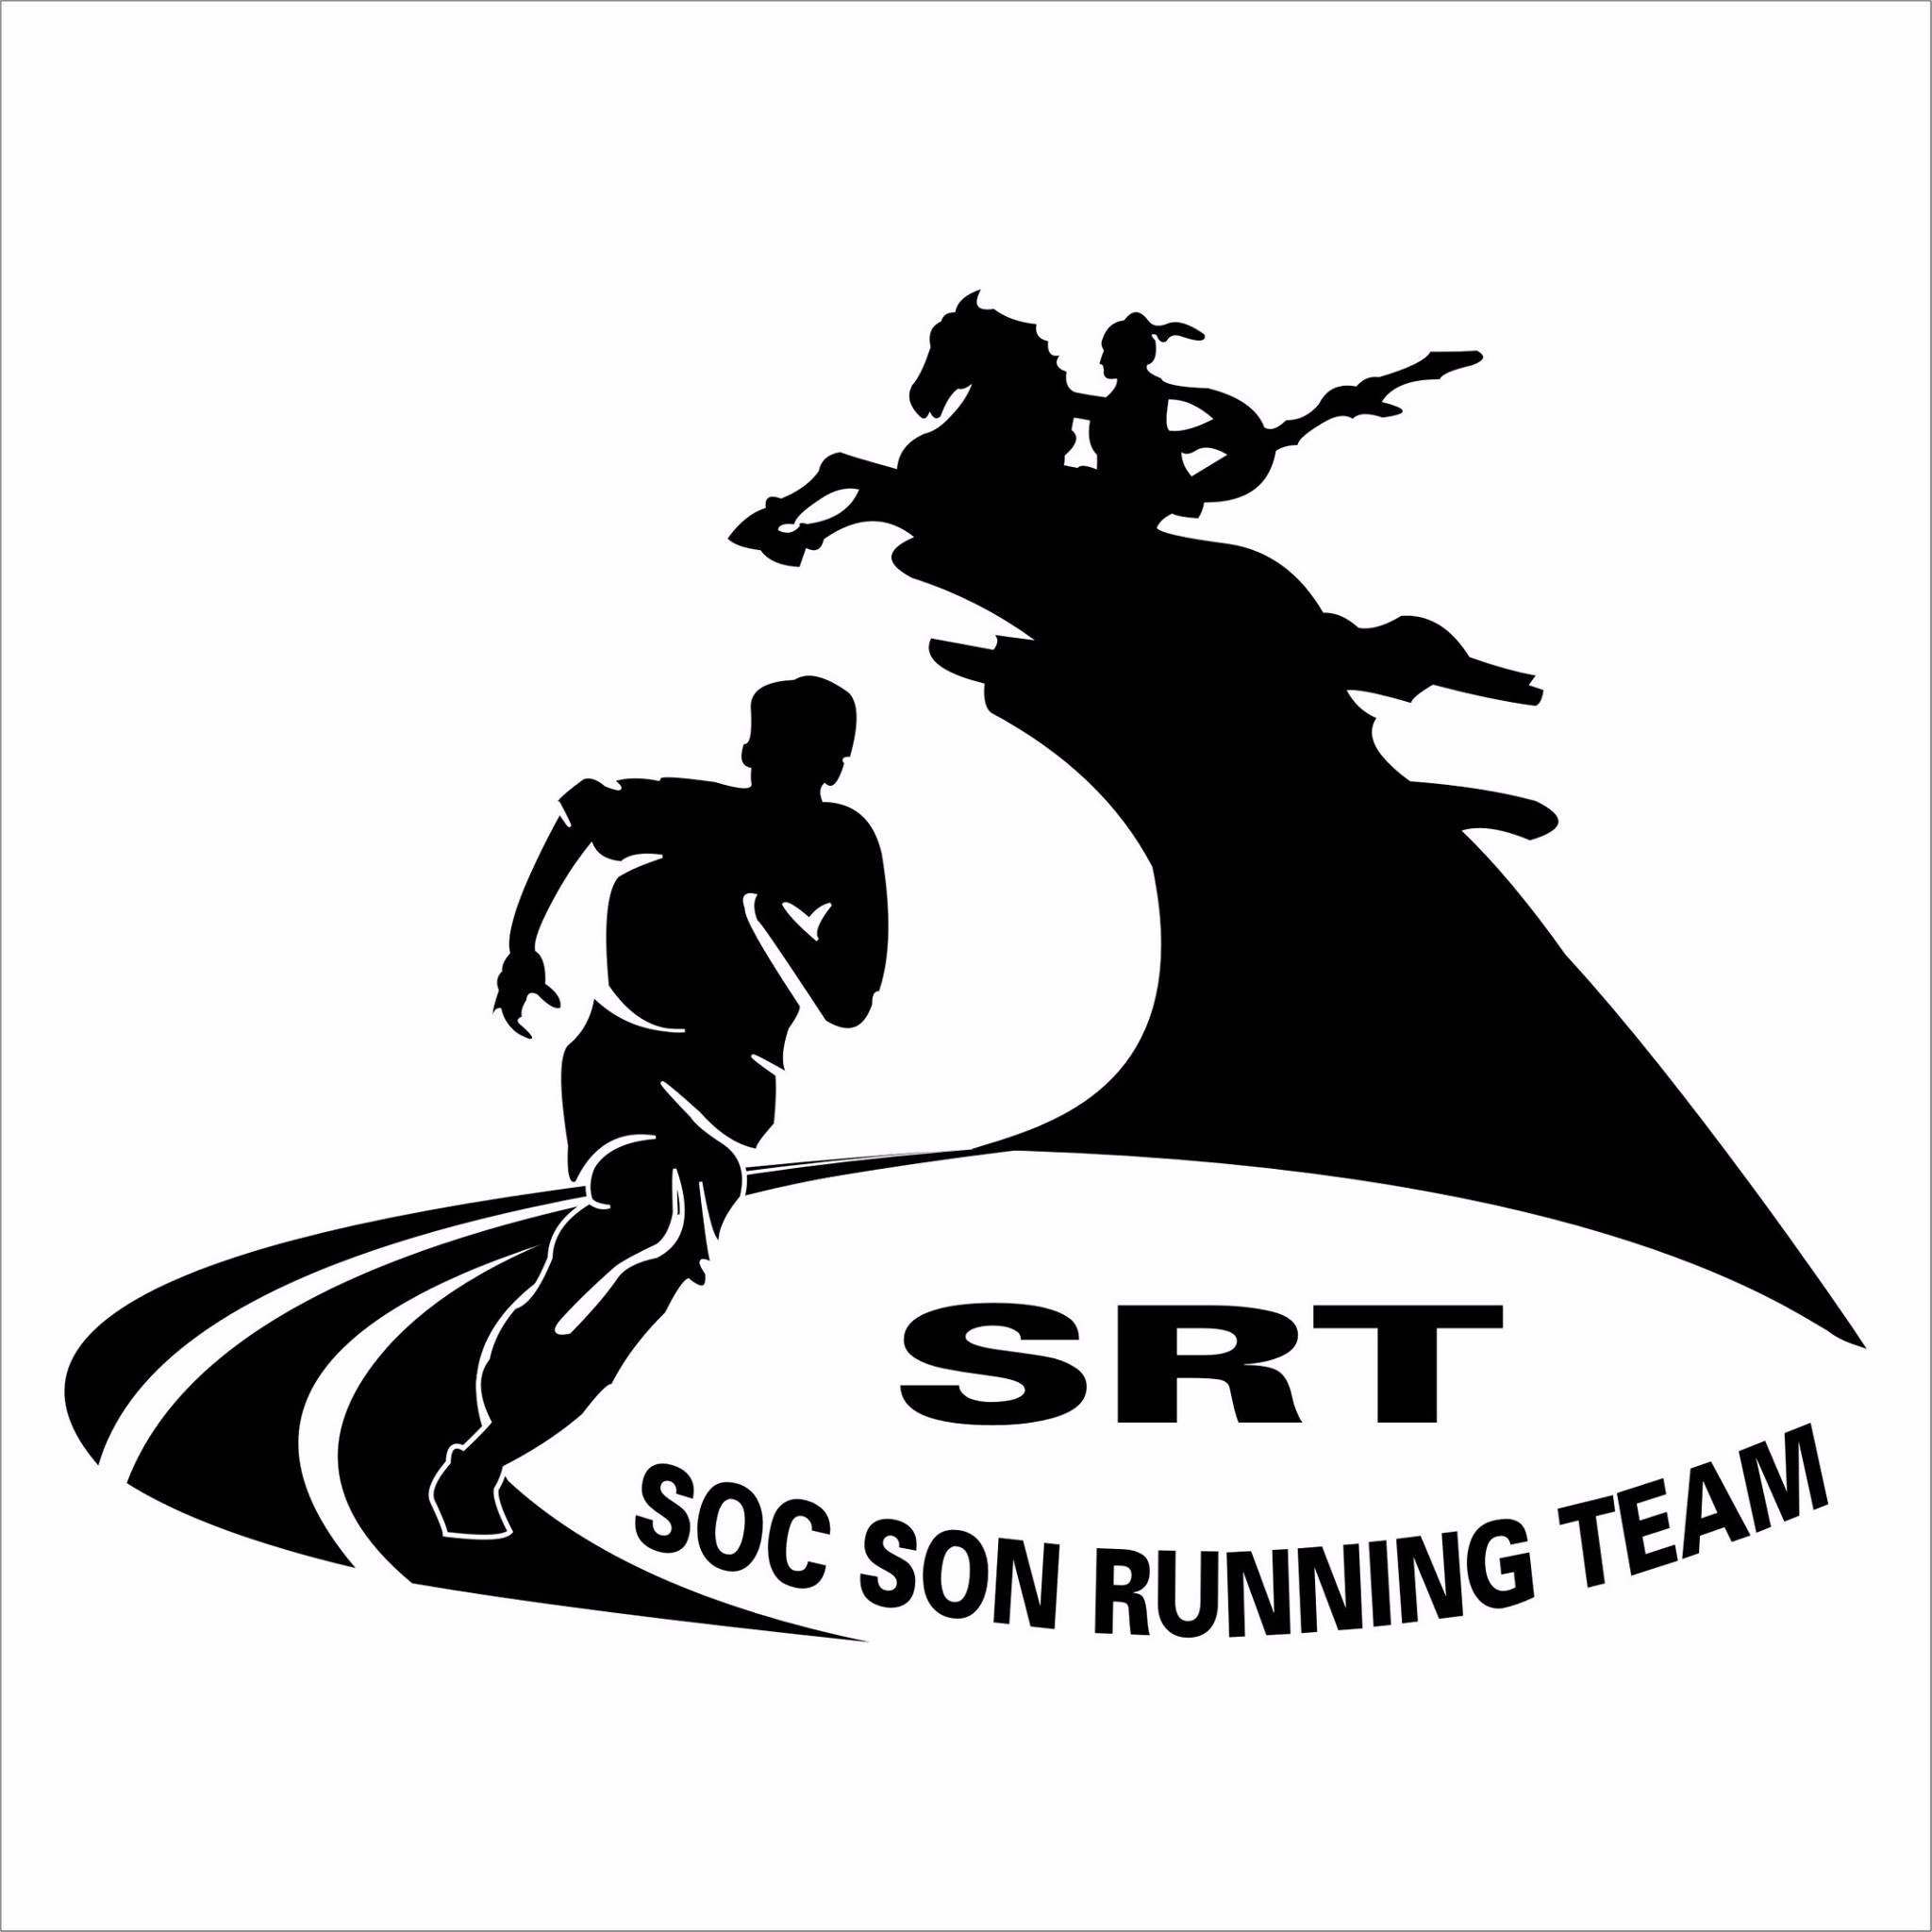 SRT- SOC SON RUNNING TEAM